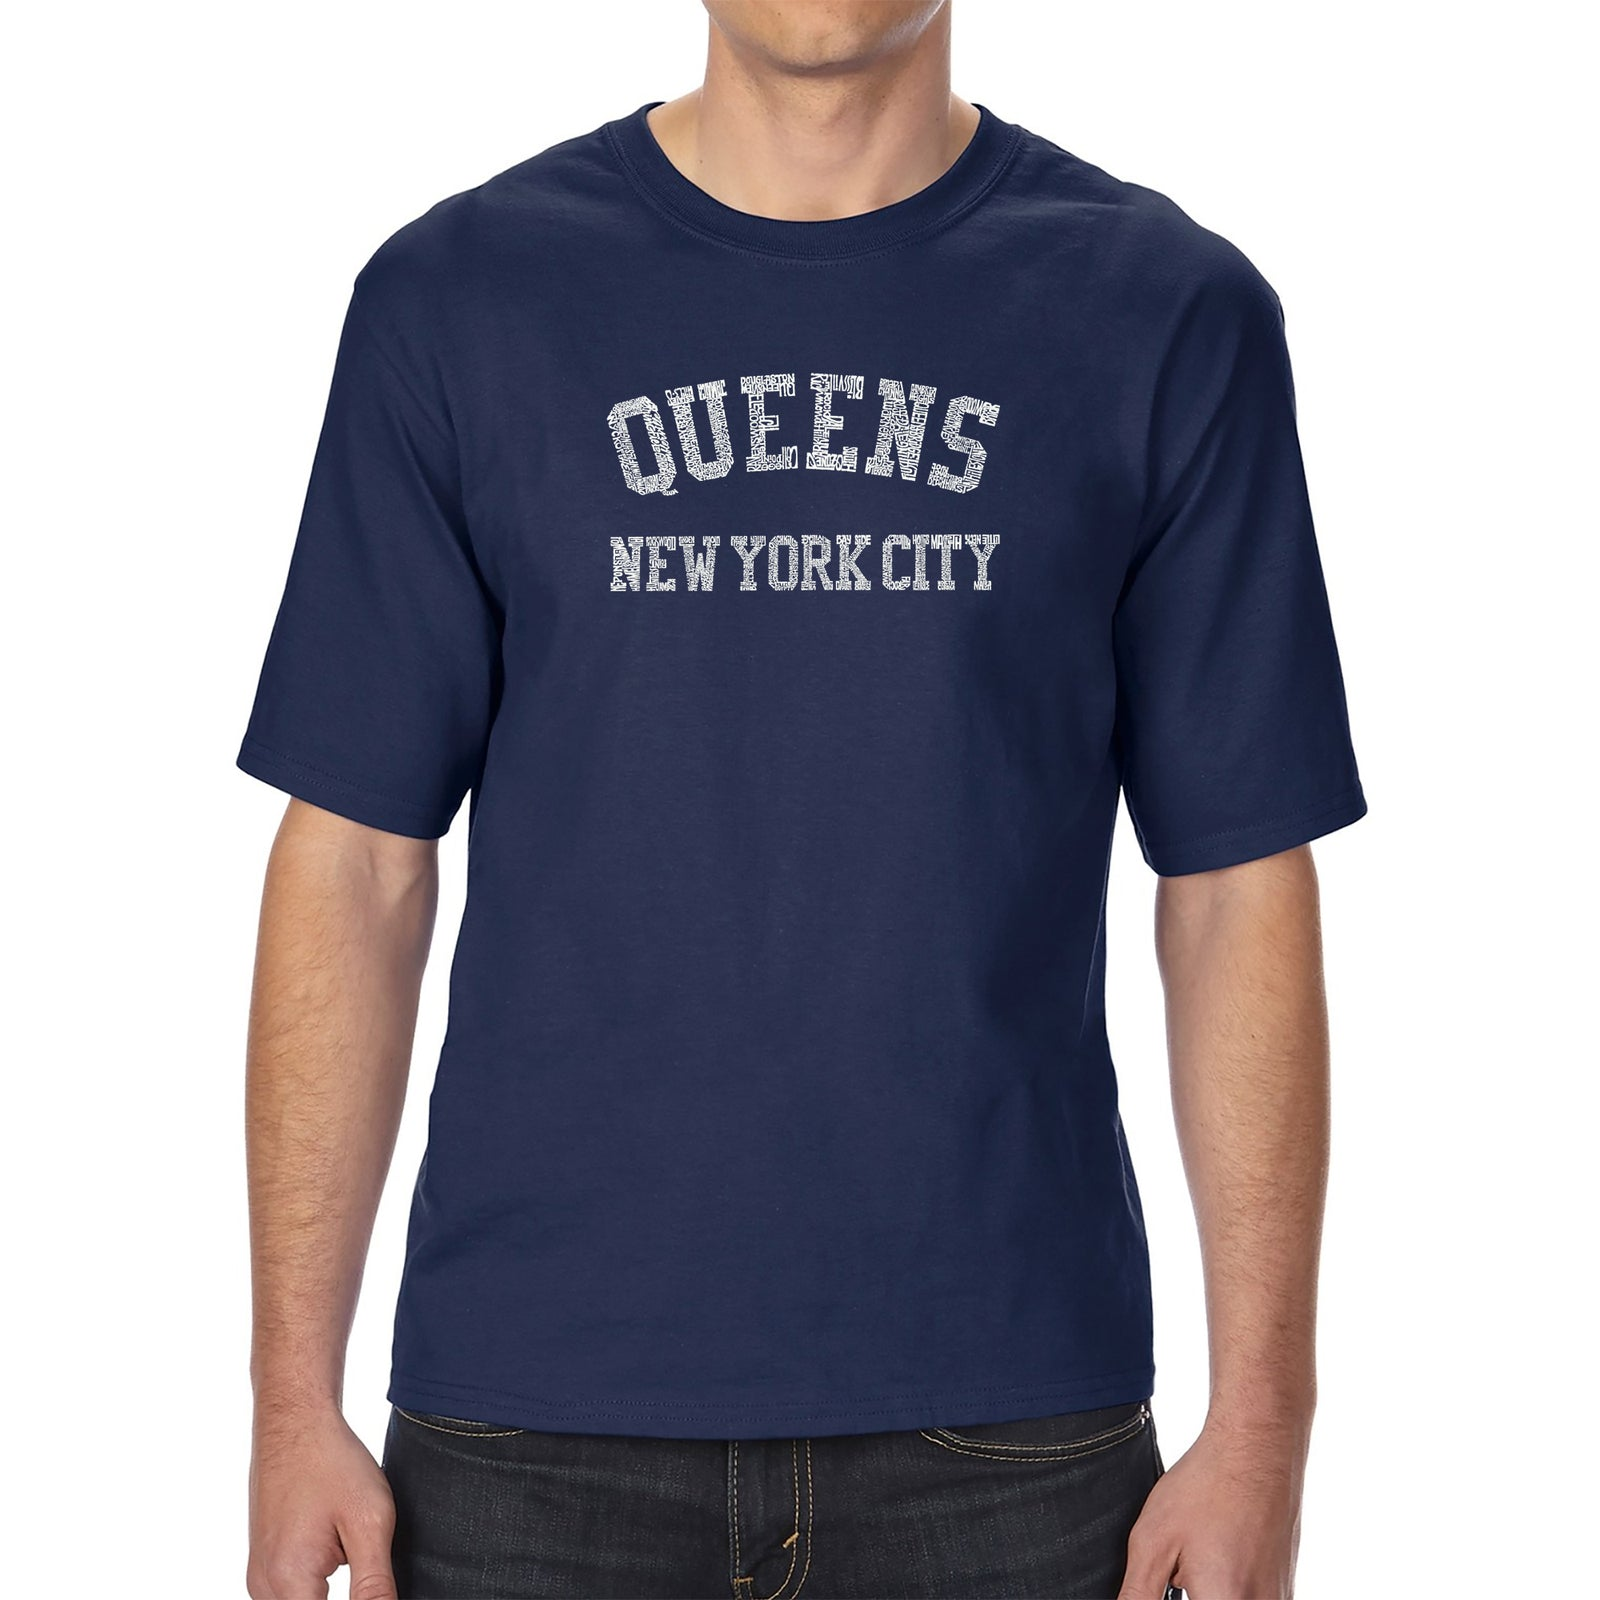 Men's Tall and Long Word Art T-shirt - POPULAR NEIGHBORHOODS IN QUEENS, NY